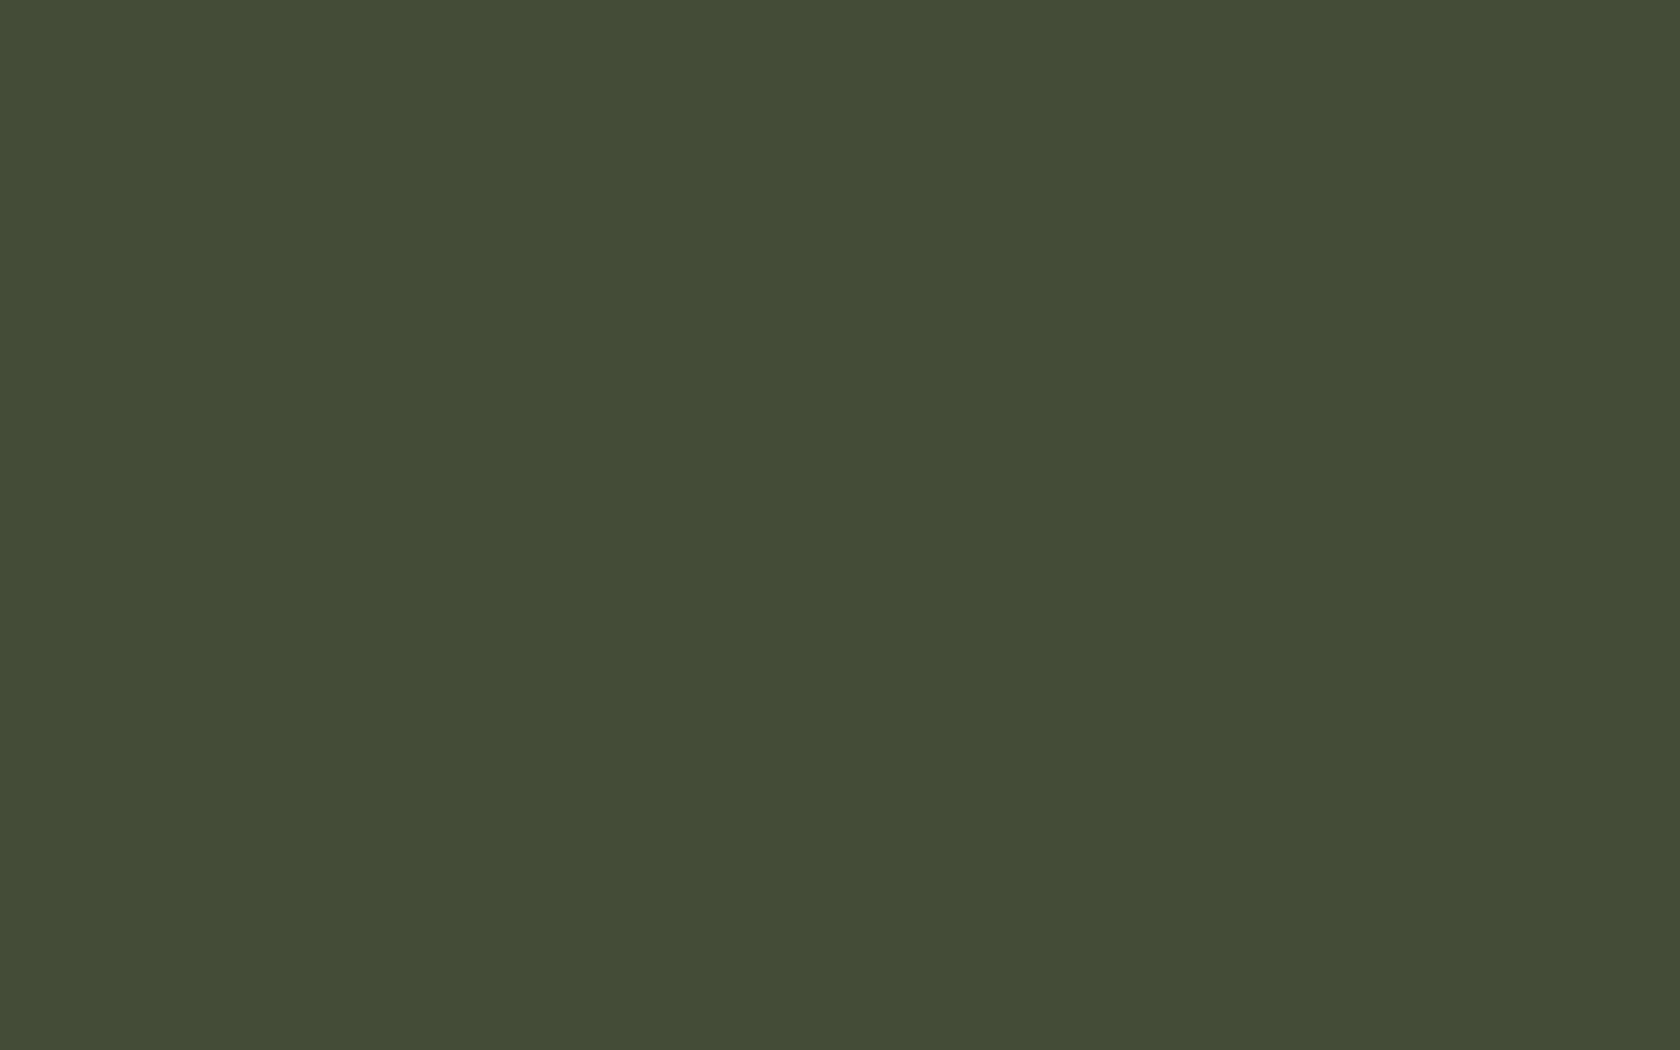 1680x1050 Rifle Green Solid Color Background